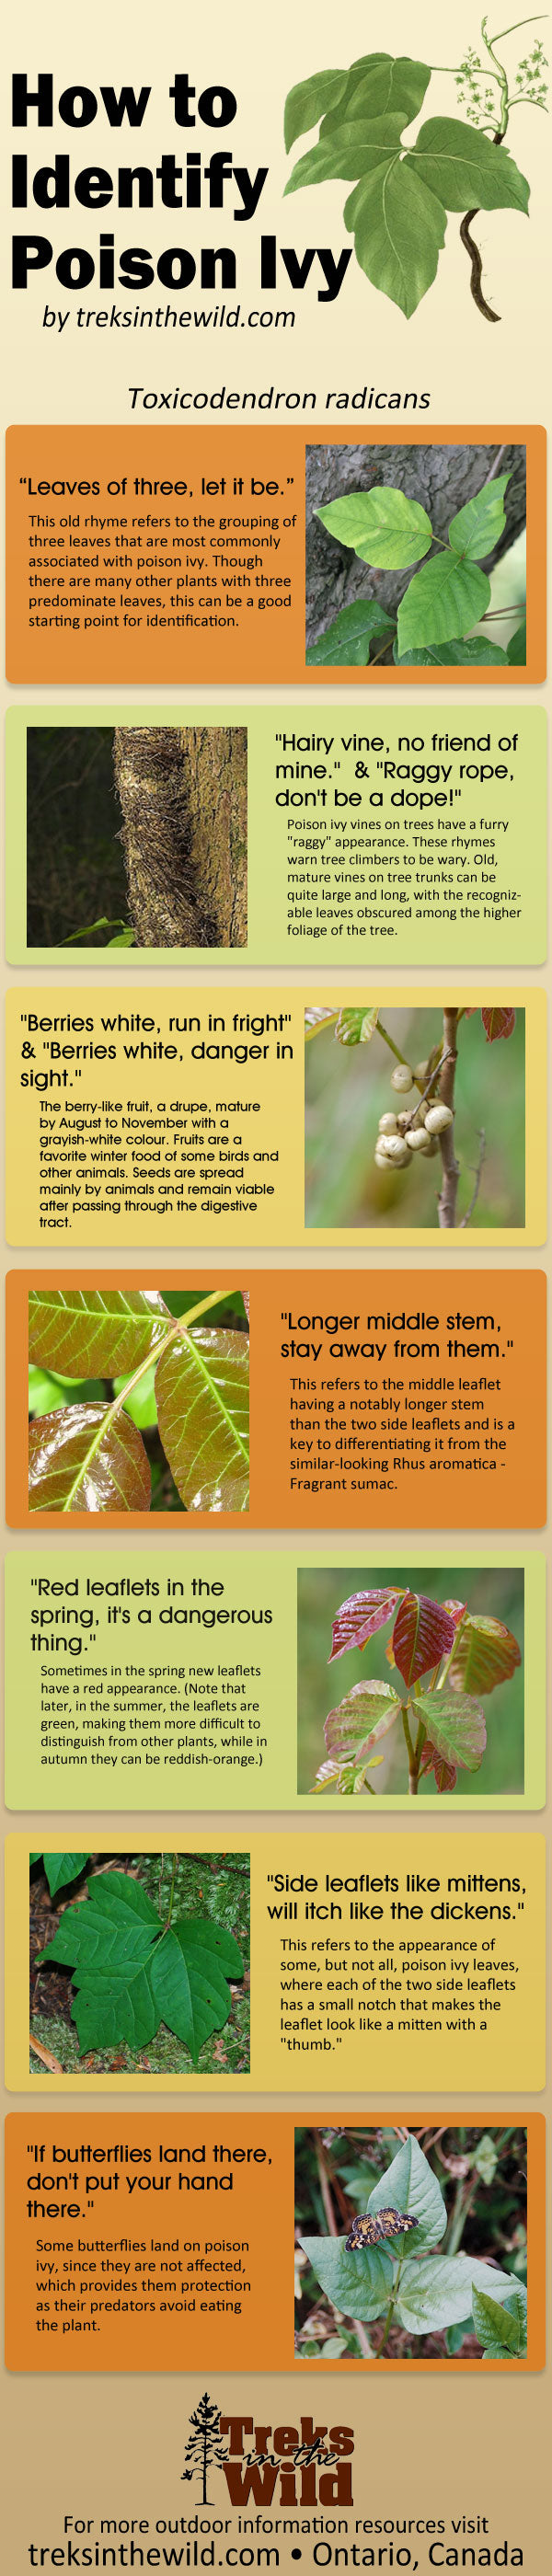 How to Identify Poison Ivy - Infographic